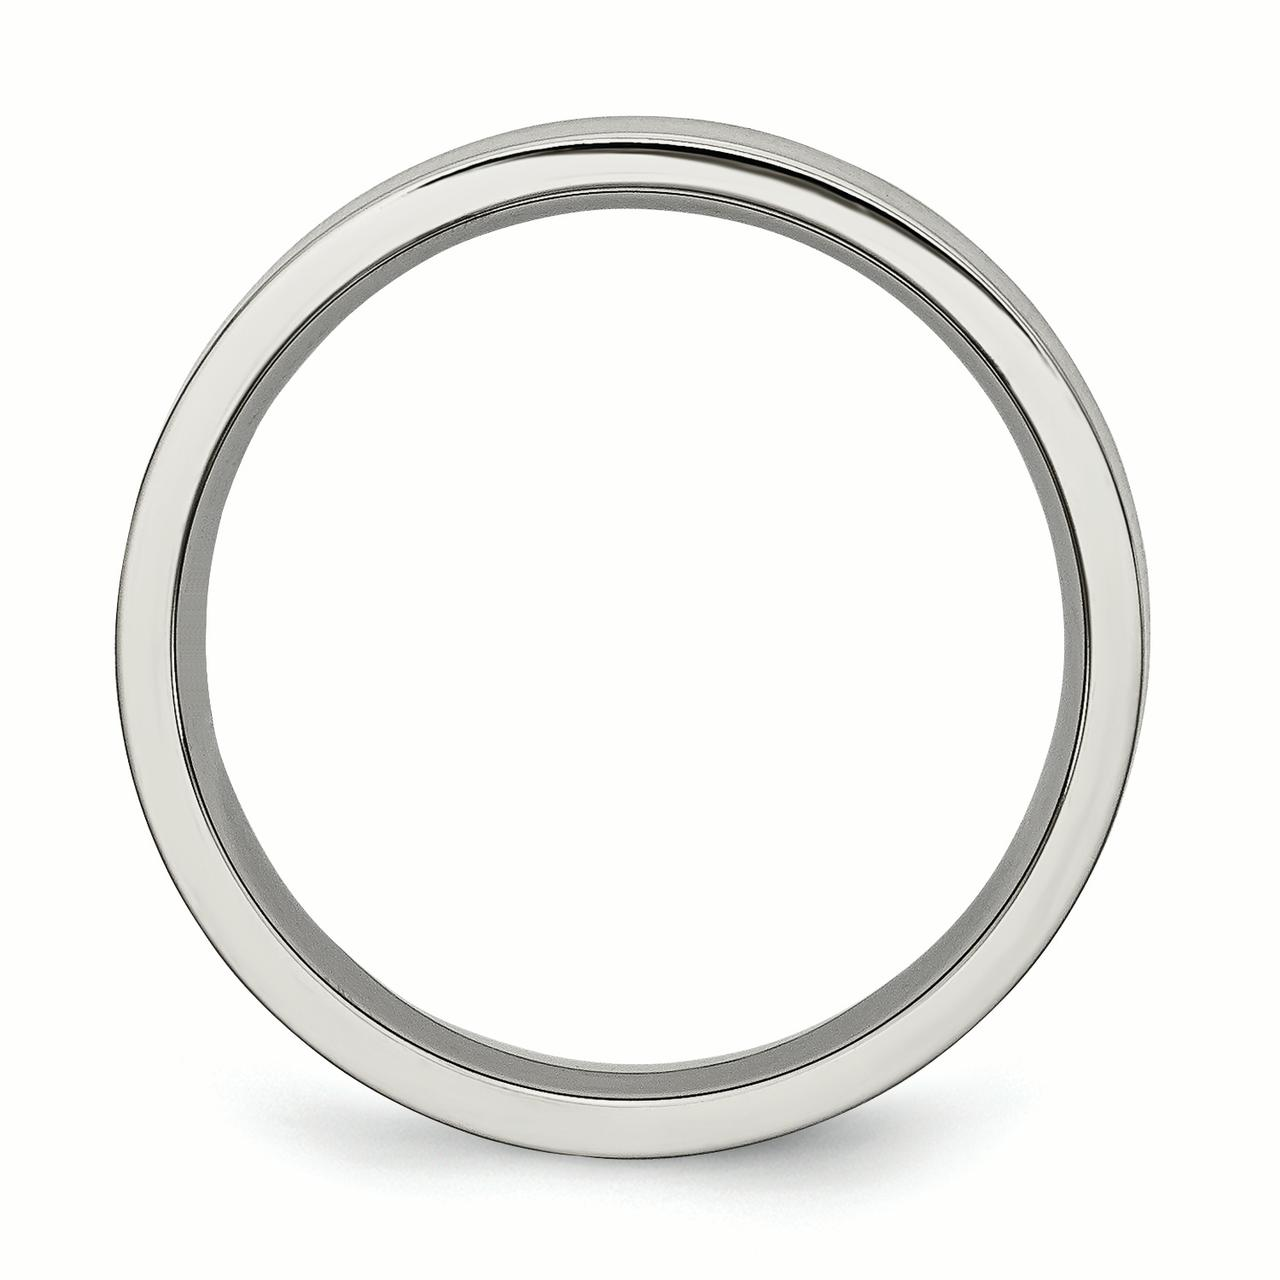 Titanium Flat 5mm Brushed Wedding Ring Band Size 10.00 Classic Fashion Jewelry Gifts For Women For Her - image 1 of 7